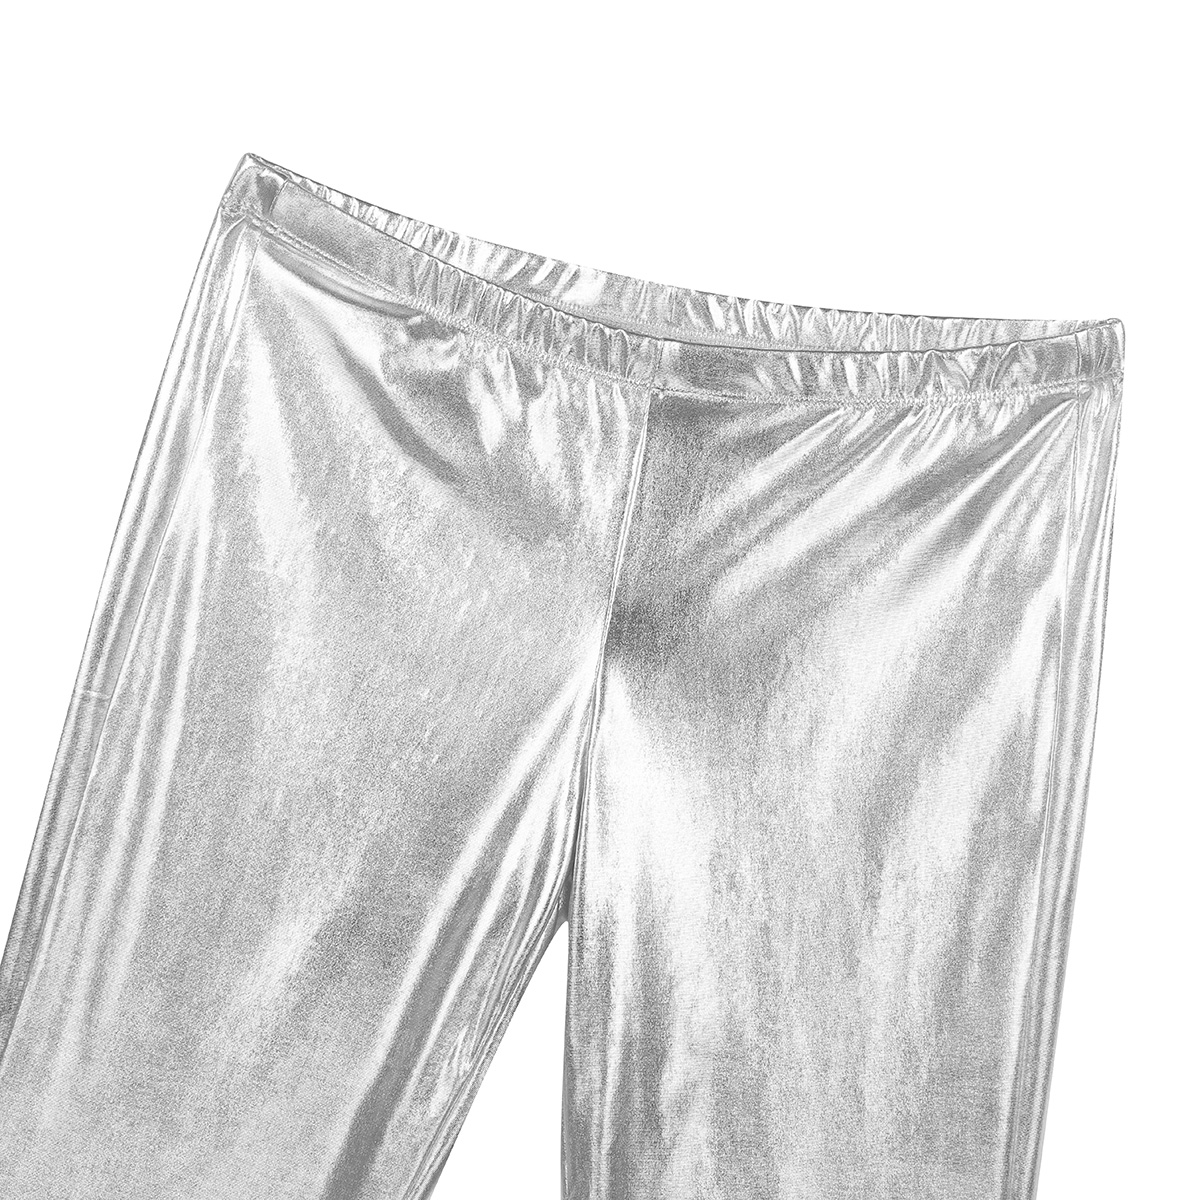 ChicTry Adults Mens Shiny Metallic Disco Pants with Bell Bottom Flared Long Pants Dude Costume Trousers for 70's Theme Parties 51